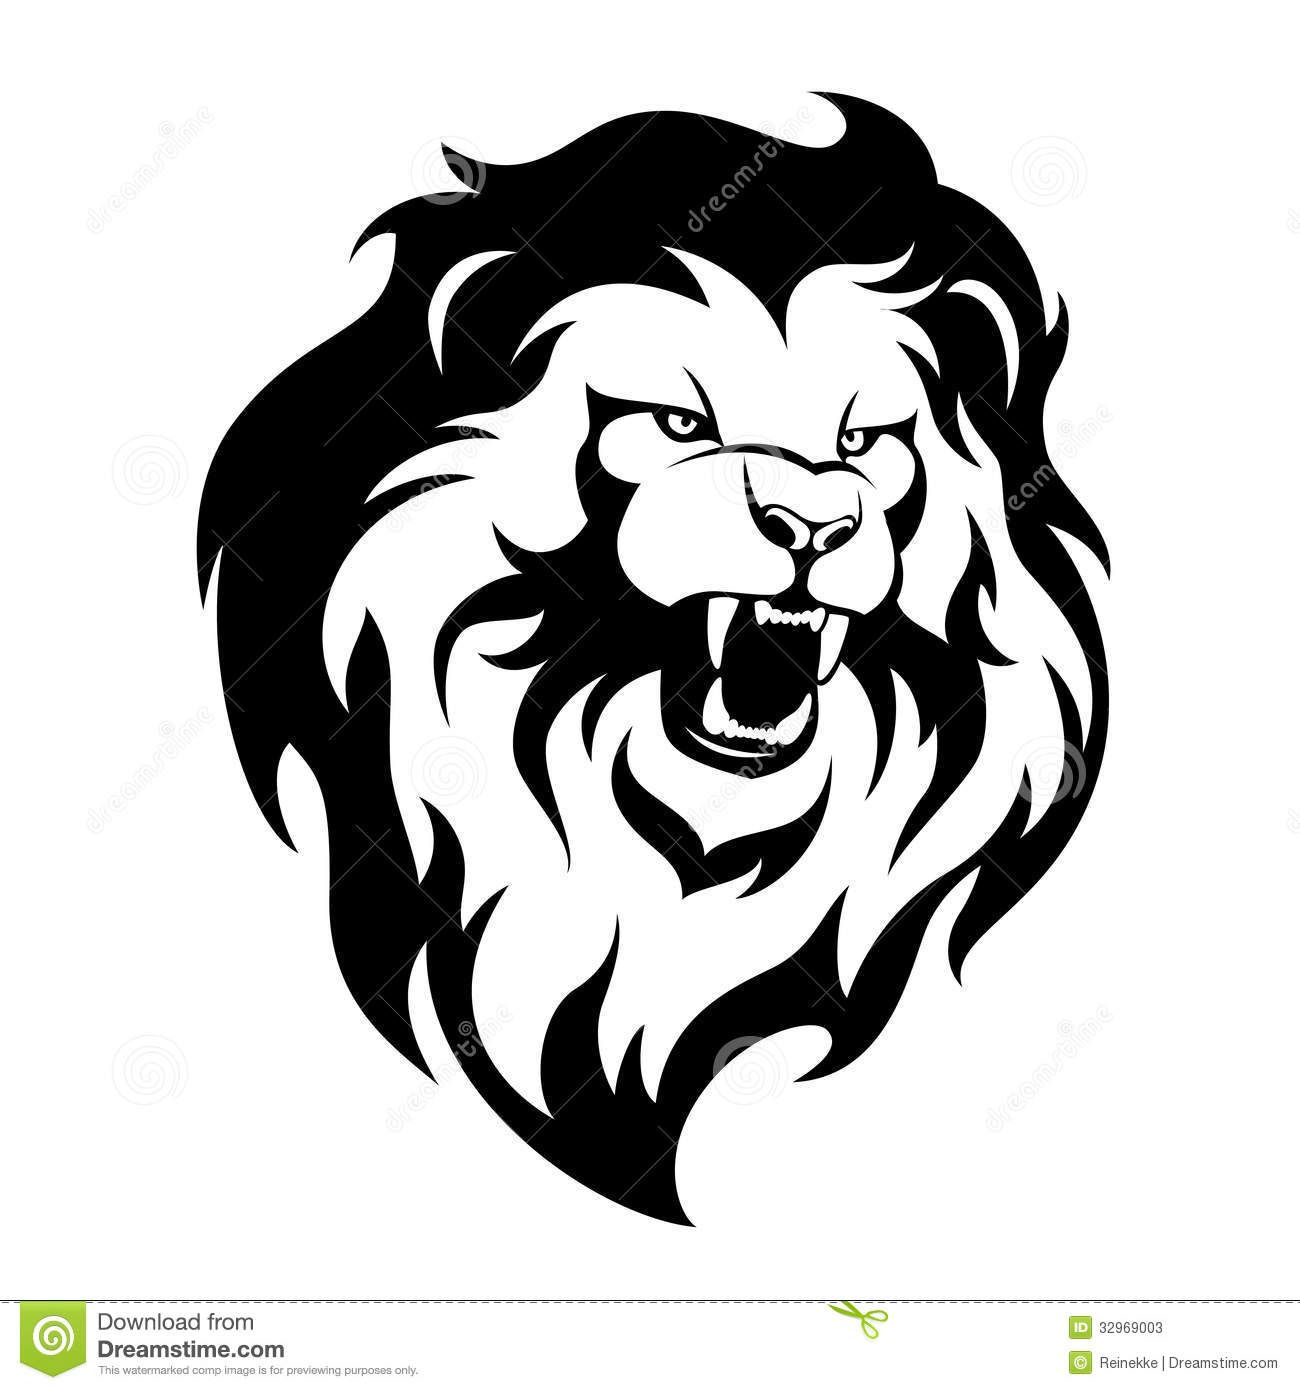 Roar Lion Wolf Head Tribal Emblem Illustration Your Design 32969003 Jpg 1300 1390 Lion Images Lion Tattoo Sleeves Lion Tattoo Find images of roaring lion. lion tattoo sleeves lion tattoo